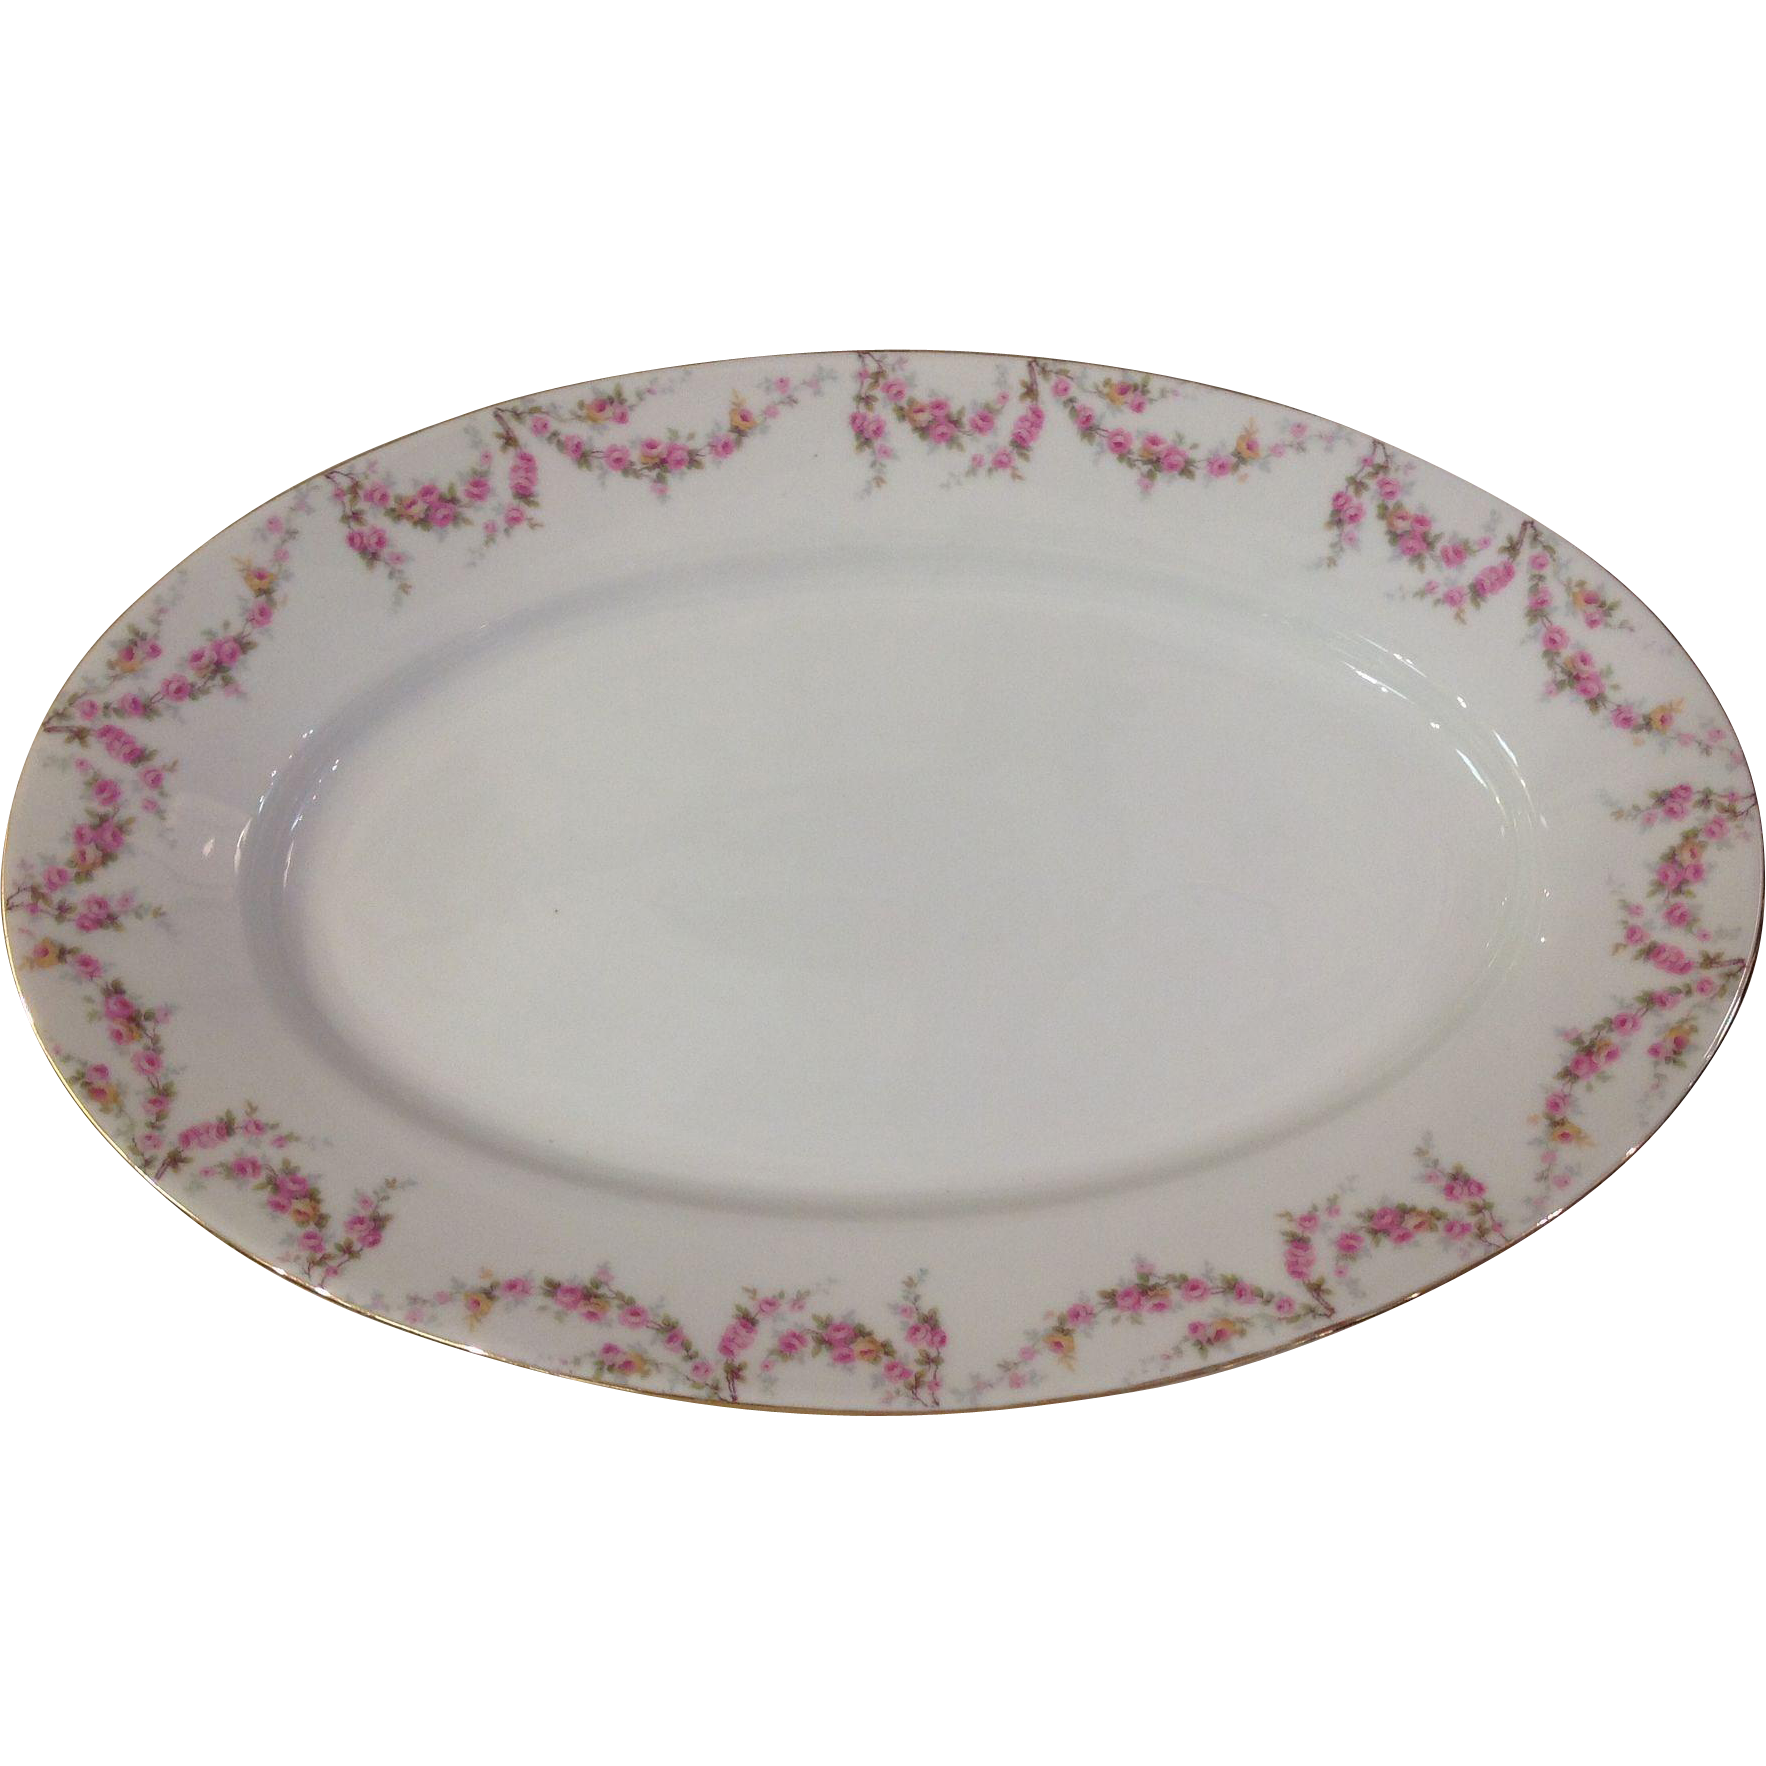 "Royal Schwarzburg China RSC15 Platter 14"" Pink Rose Garland Design c.1915"